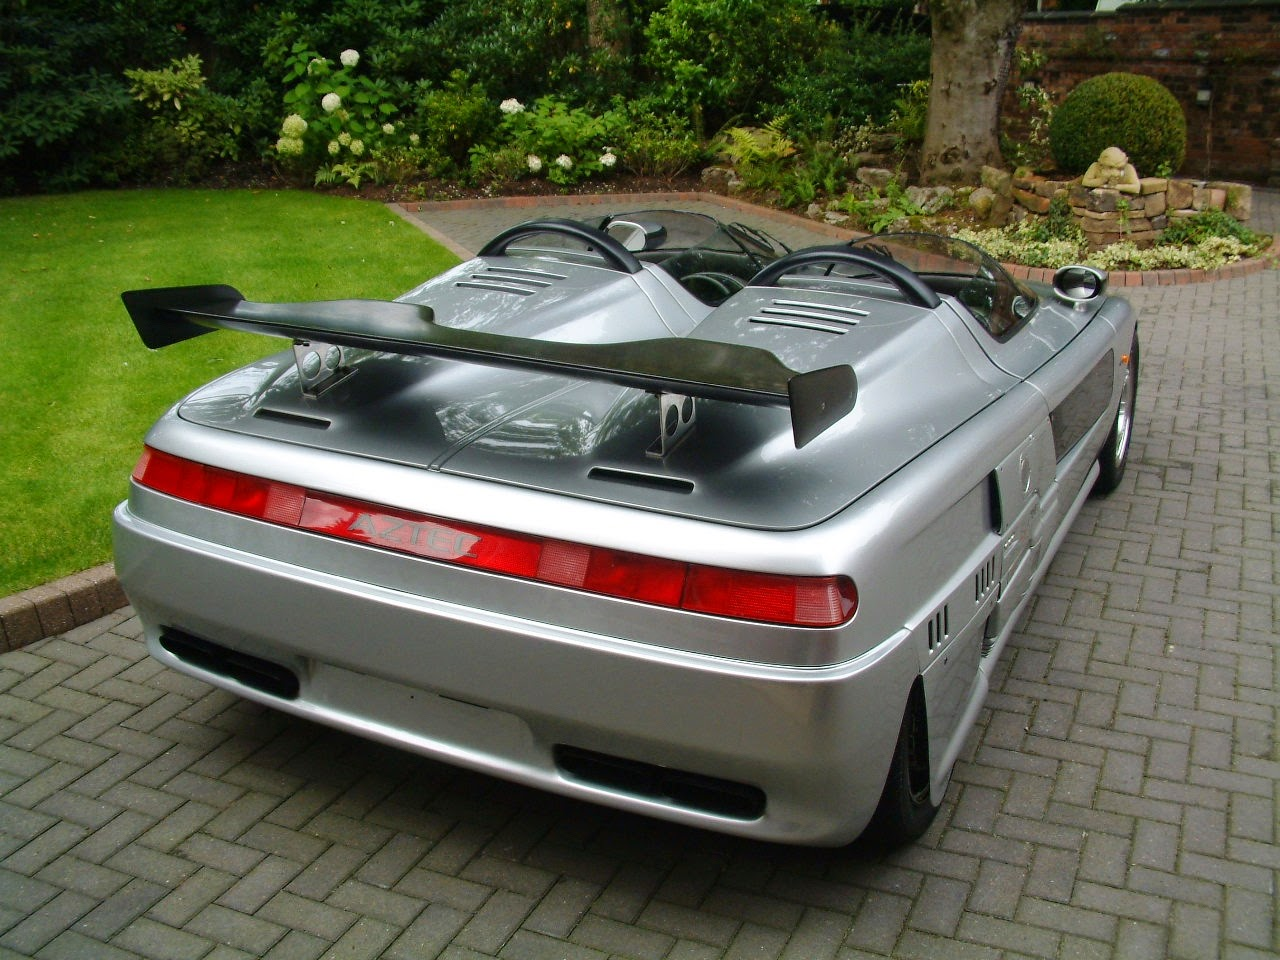 Italdesign Atzec Barchetta